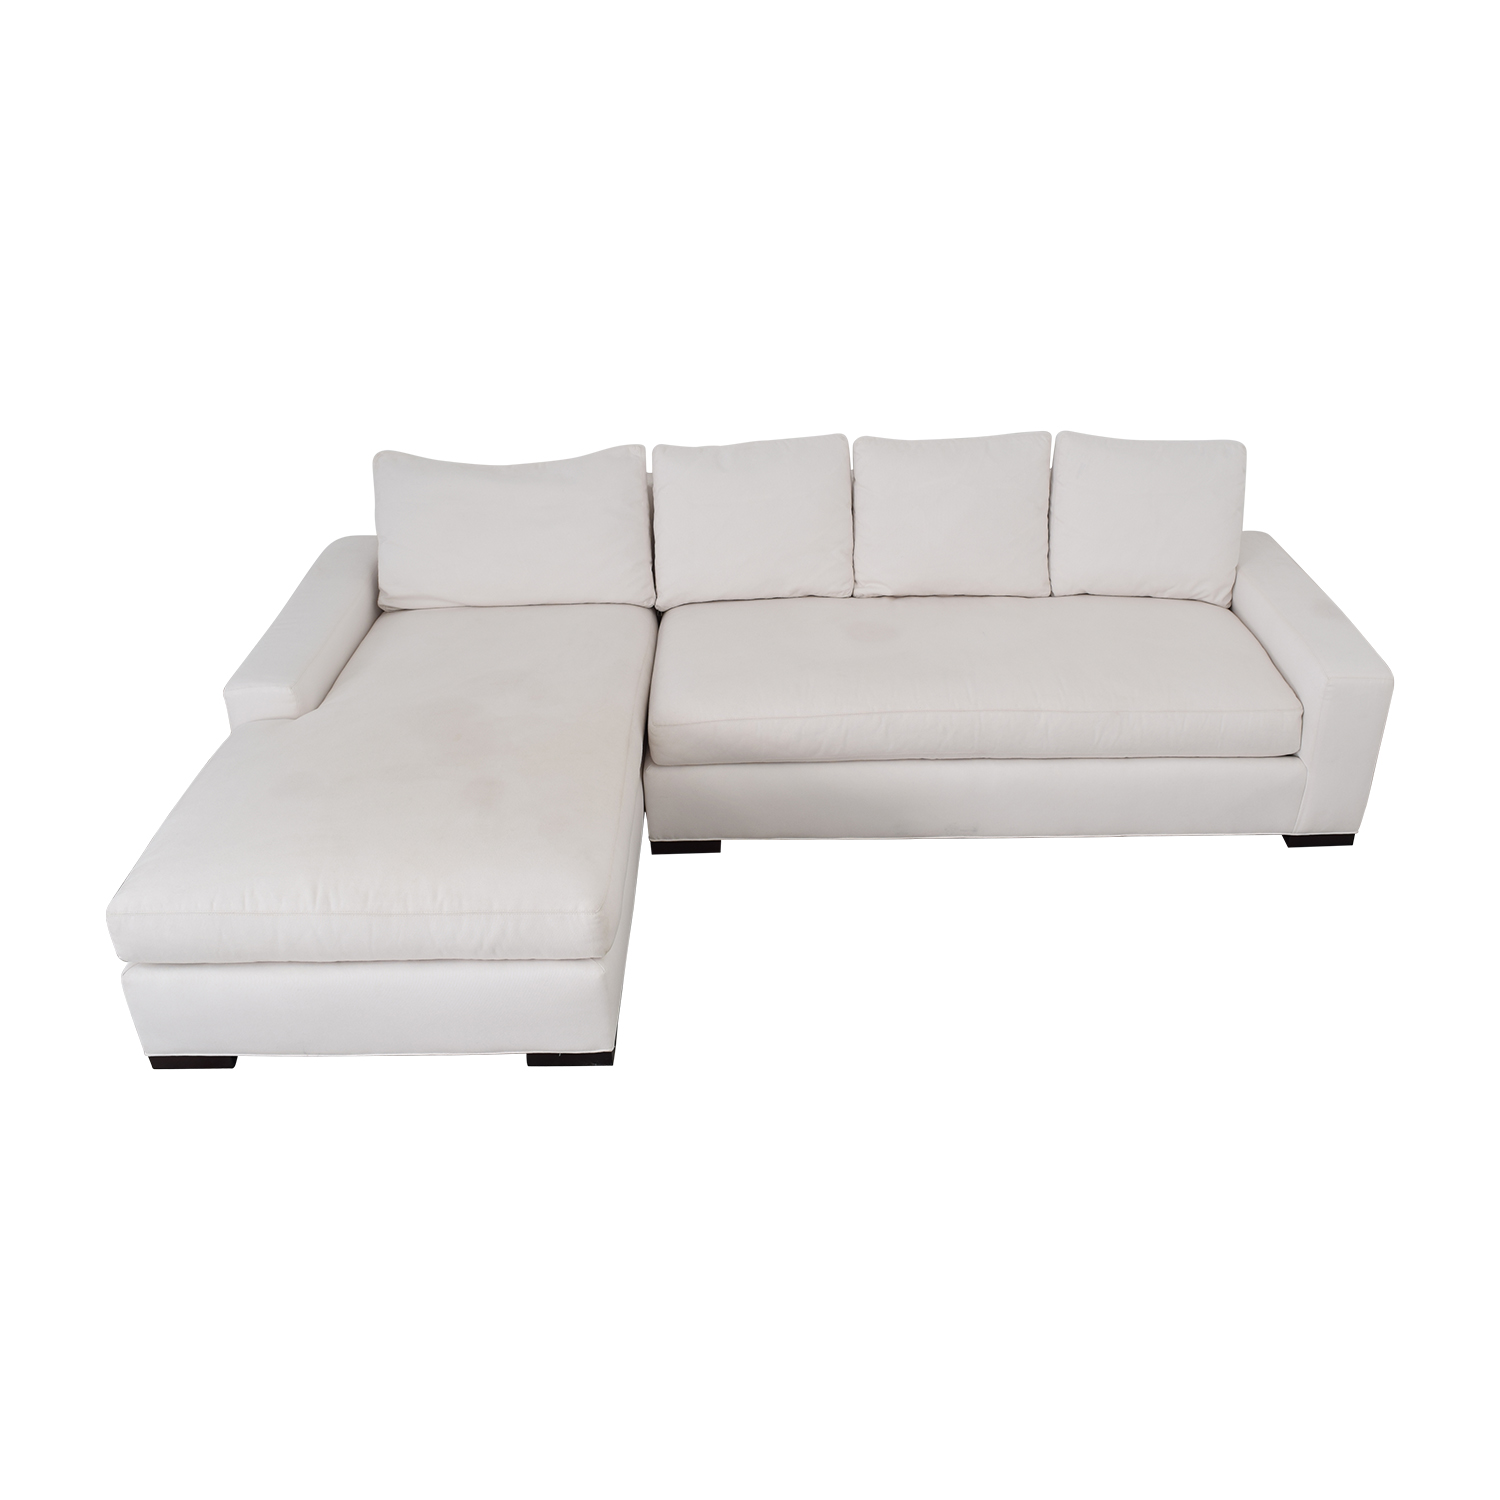 Williams Sonoma Sectional Sofa with Chaise sale